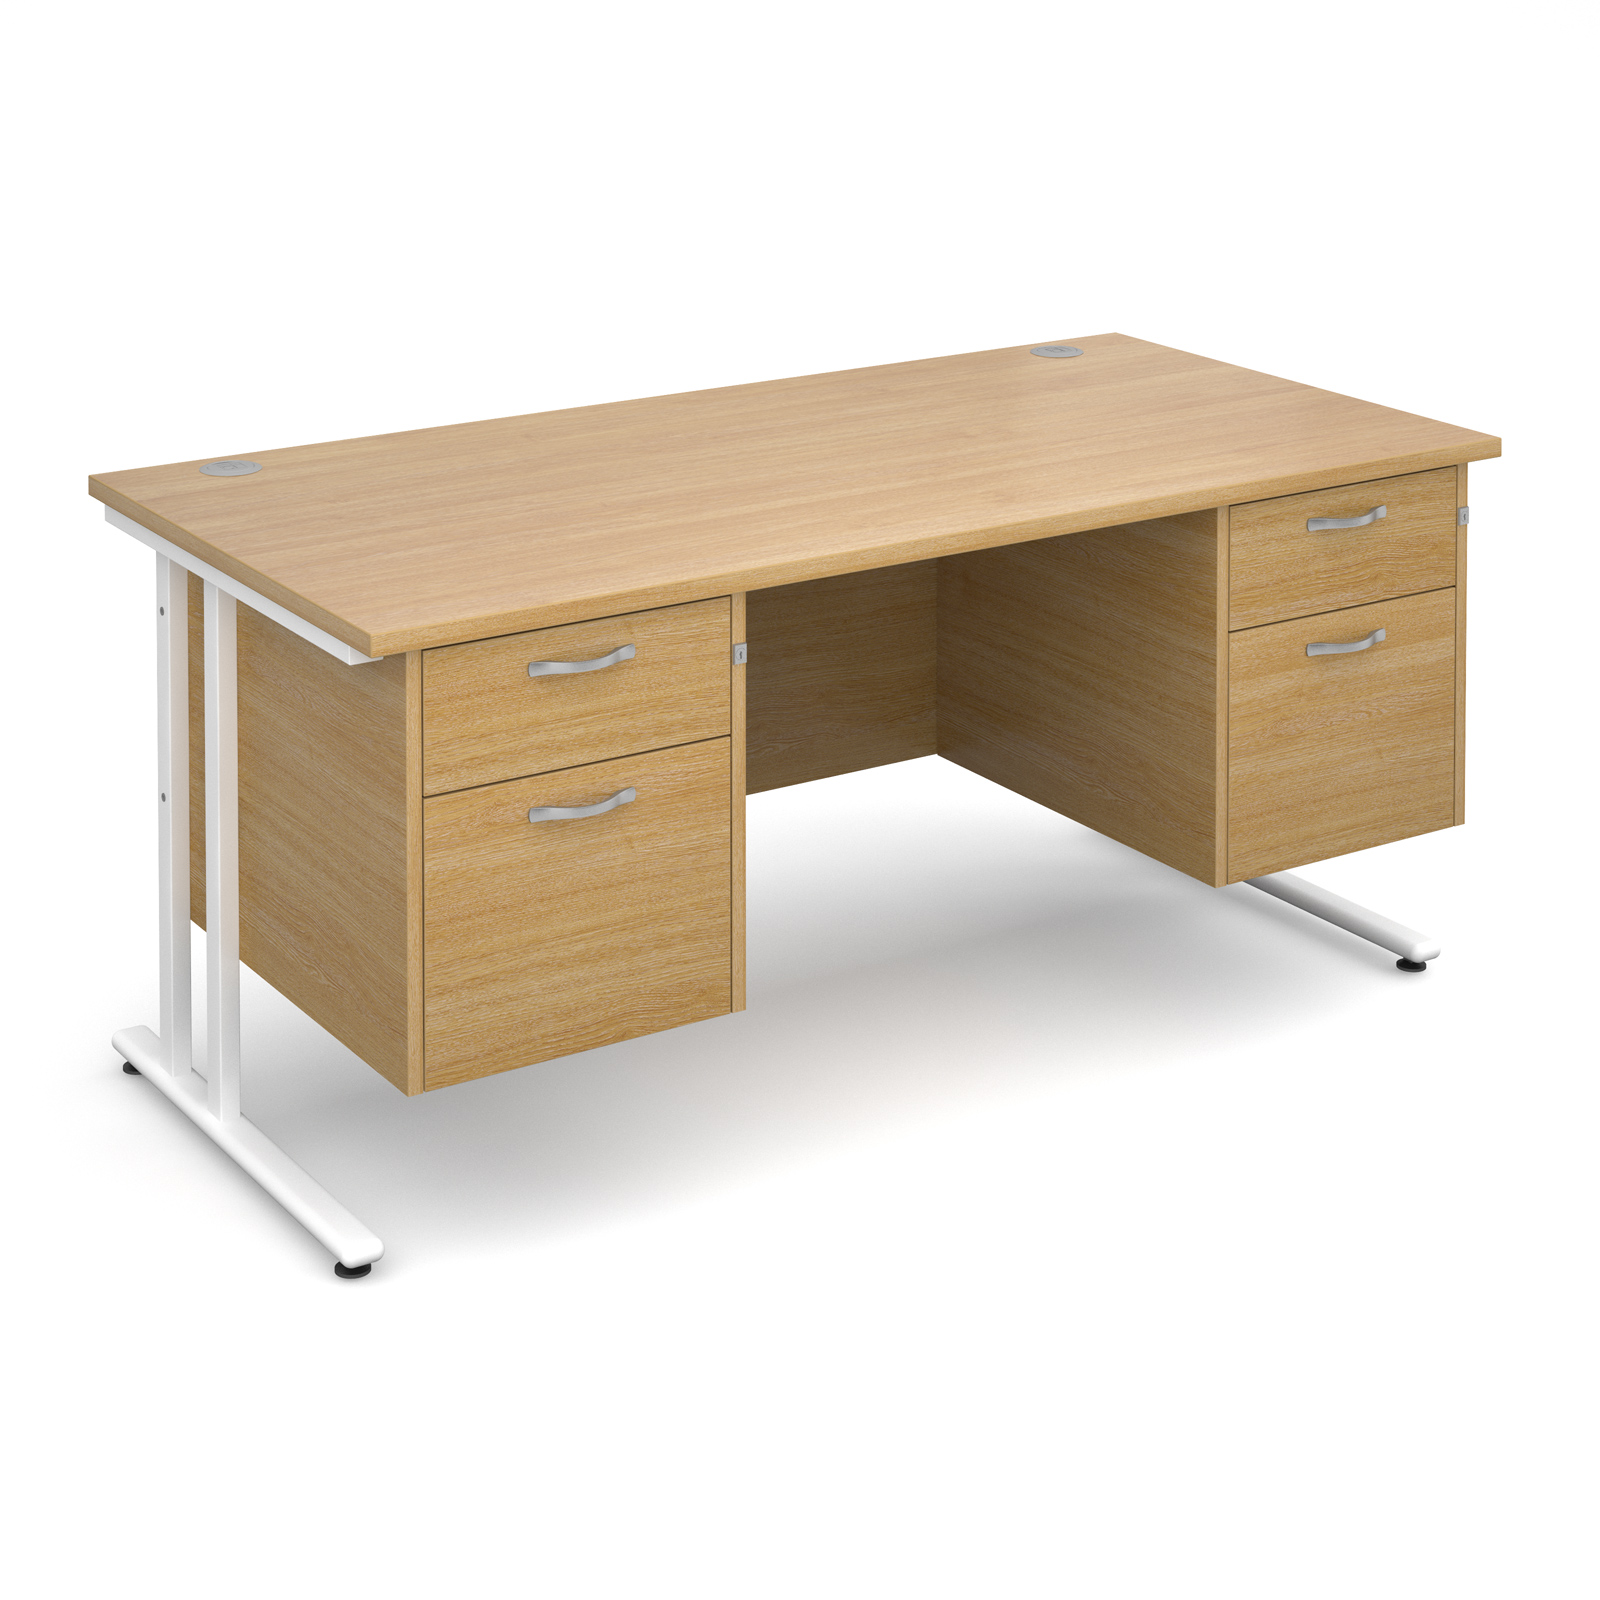 Dams Maestro 25 WL Straight Desk Double Pedestal